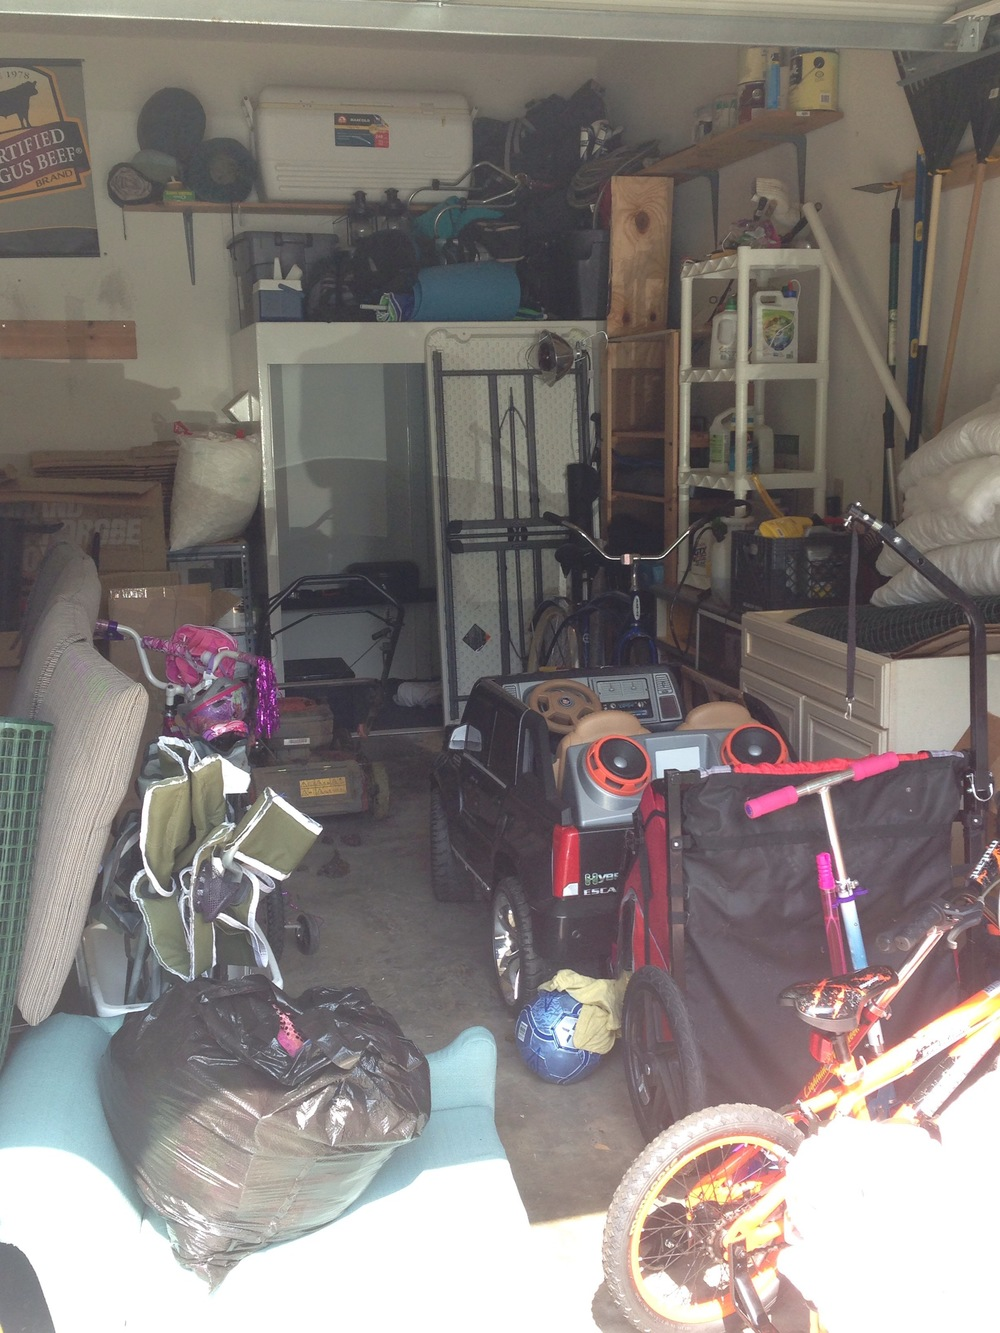 Don't act shocked! You know your garage looks just like this.